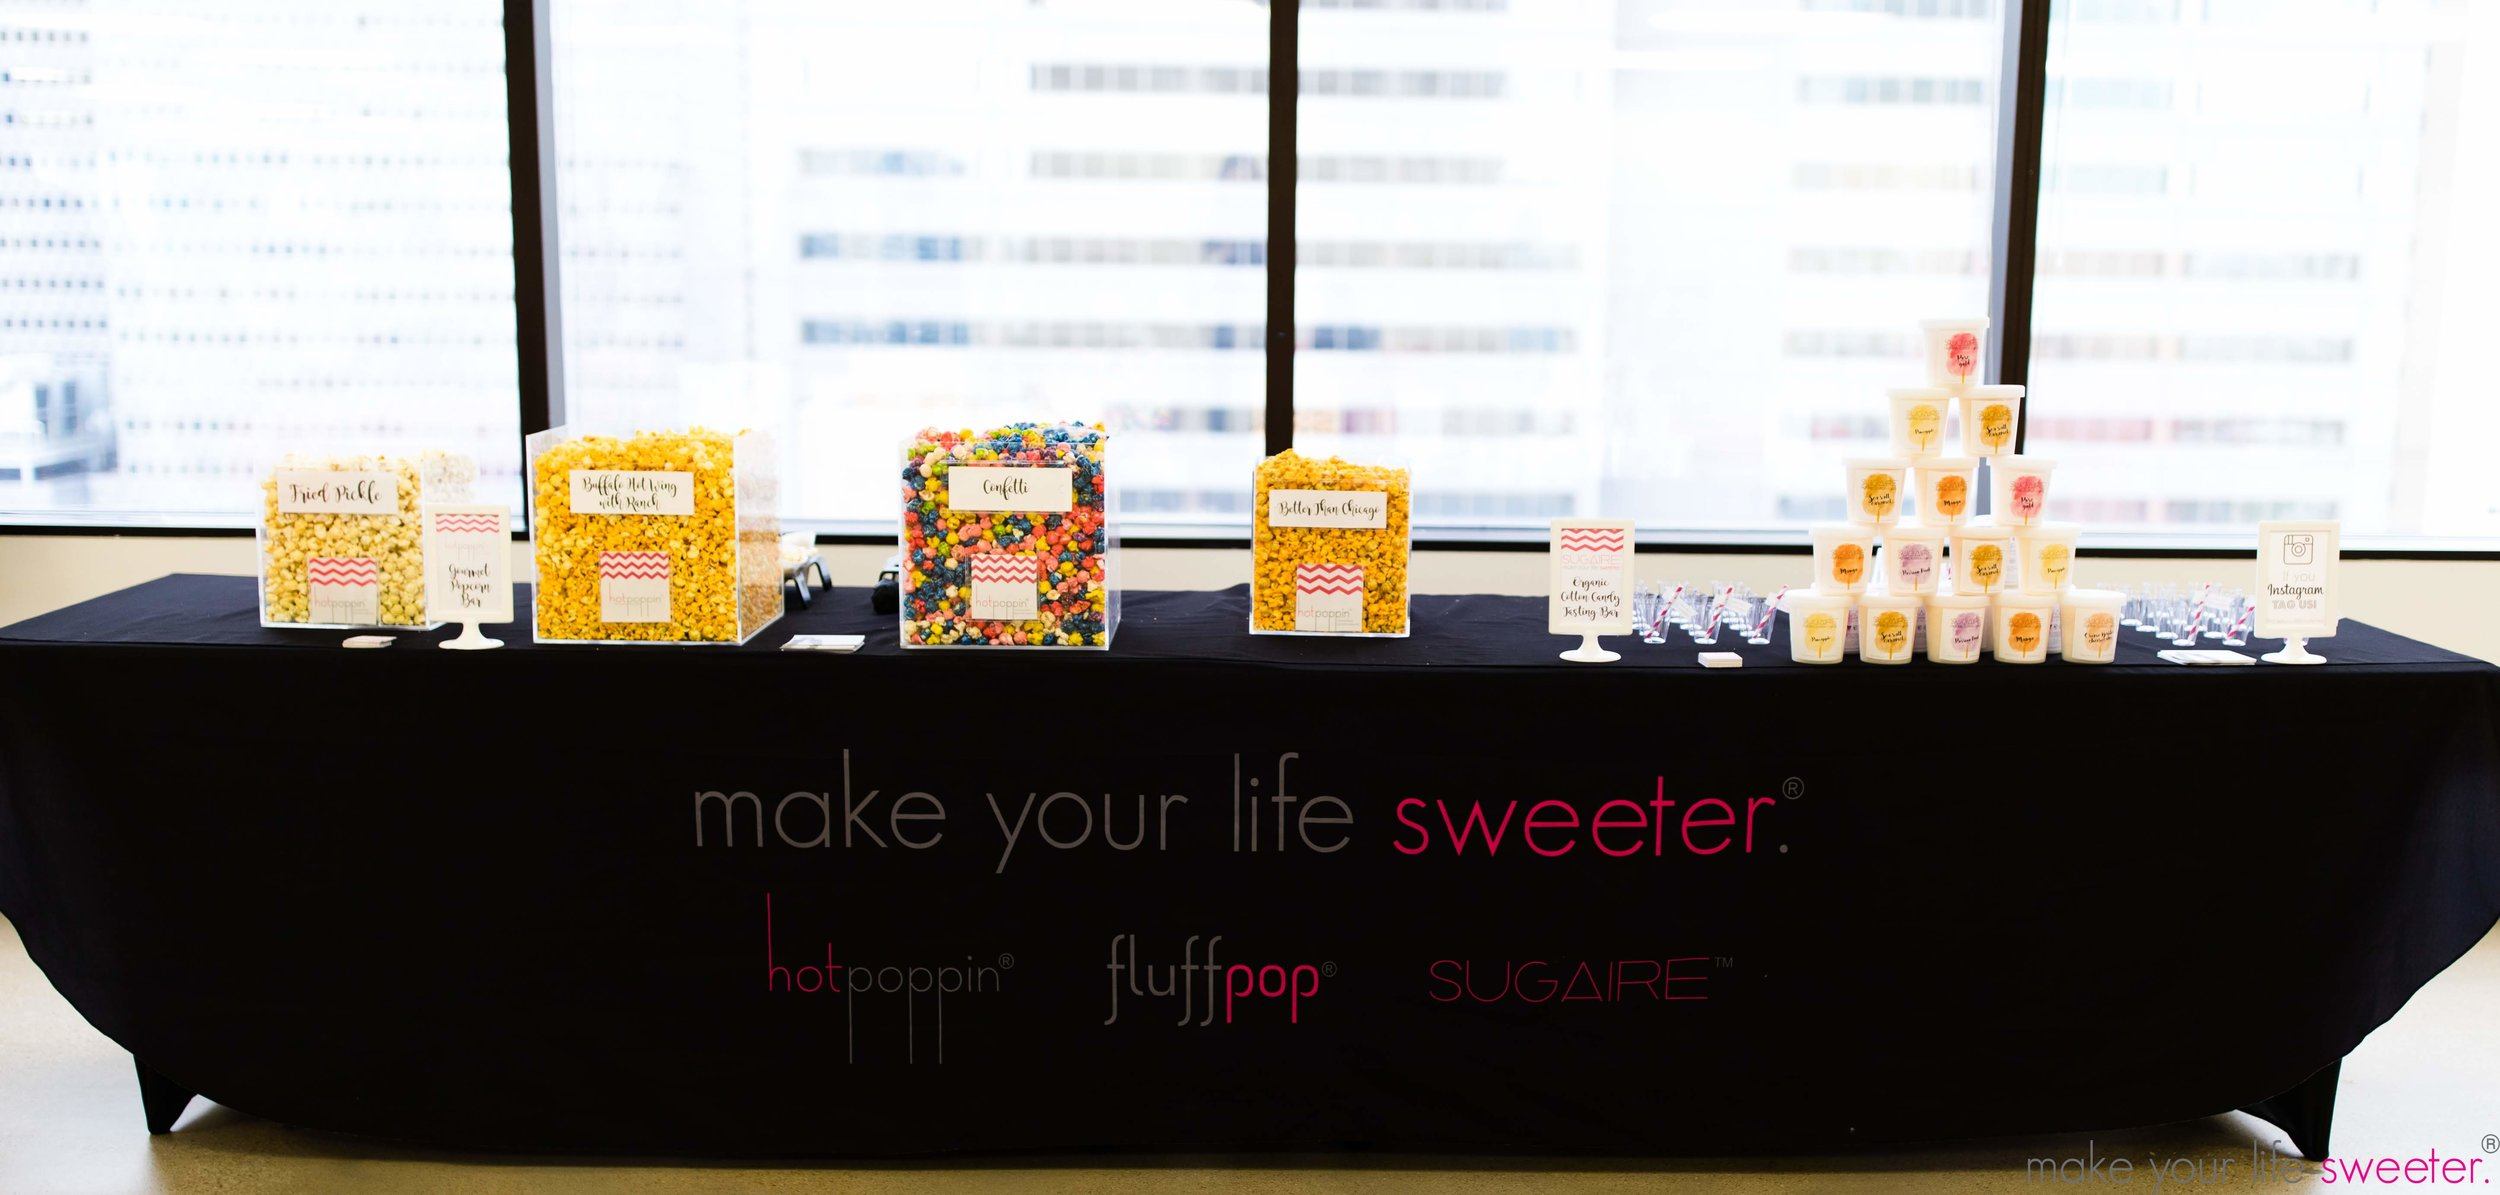 Make Your Life Sweeter Events - Women of Innovation DFW Startup Week